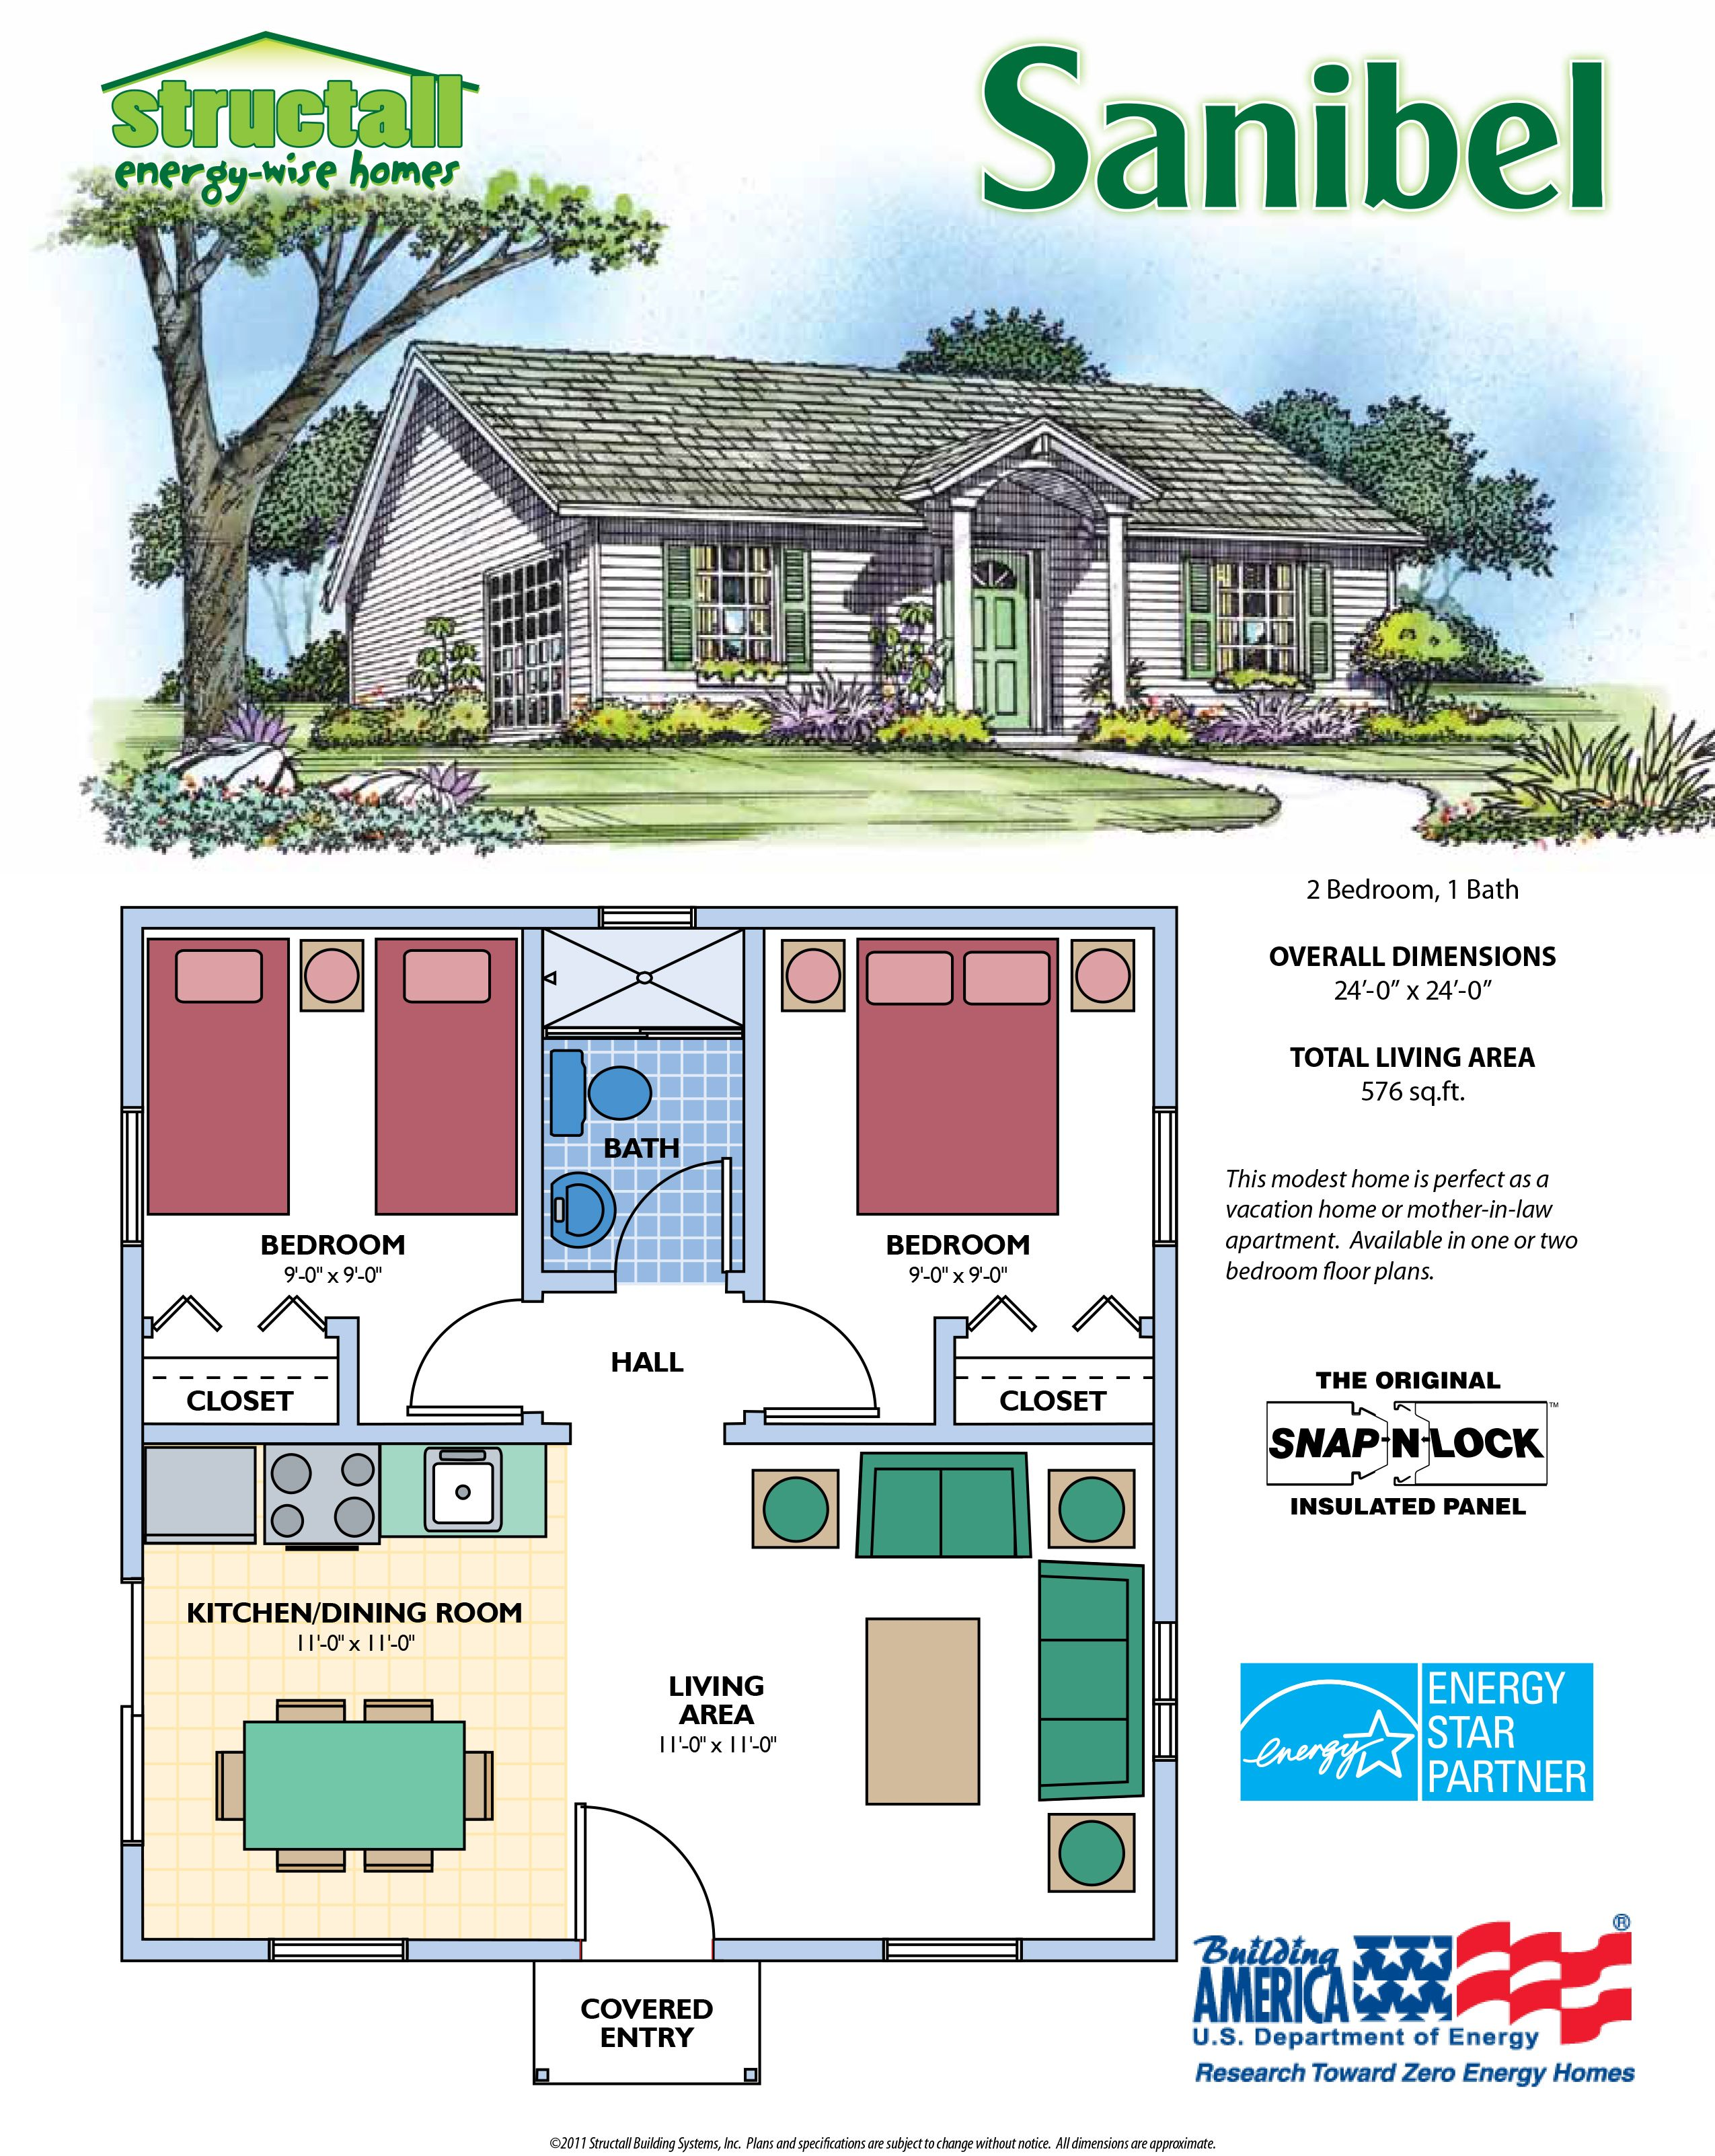 2 Bedroom 1 Bath Total 576 Sq Ft This Modest Home Is Perfect As A Vacation Home Or Mo Cottage Style House Plans Small Cottage Plans Two Bedroom Floor Plan